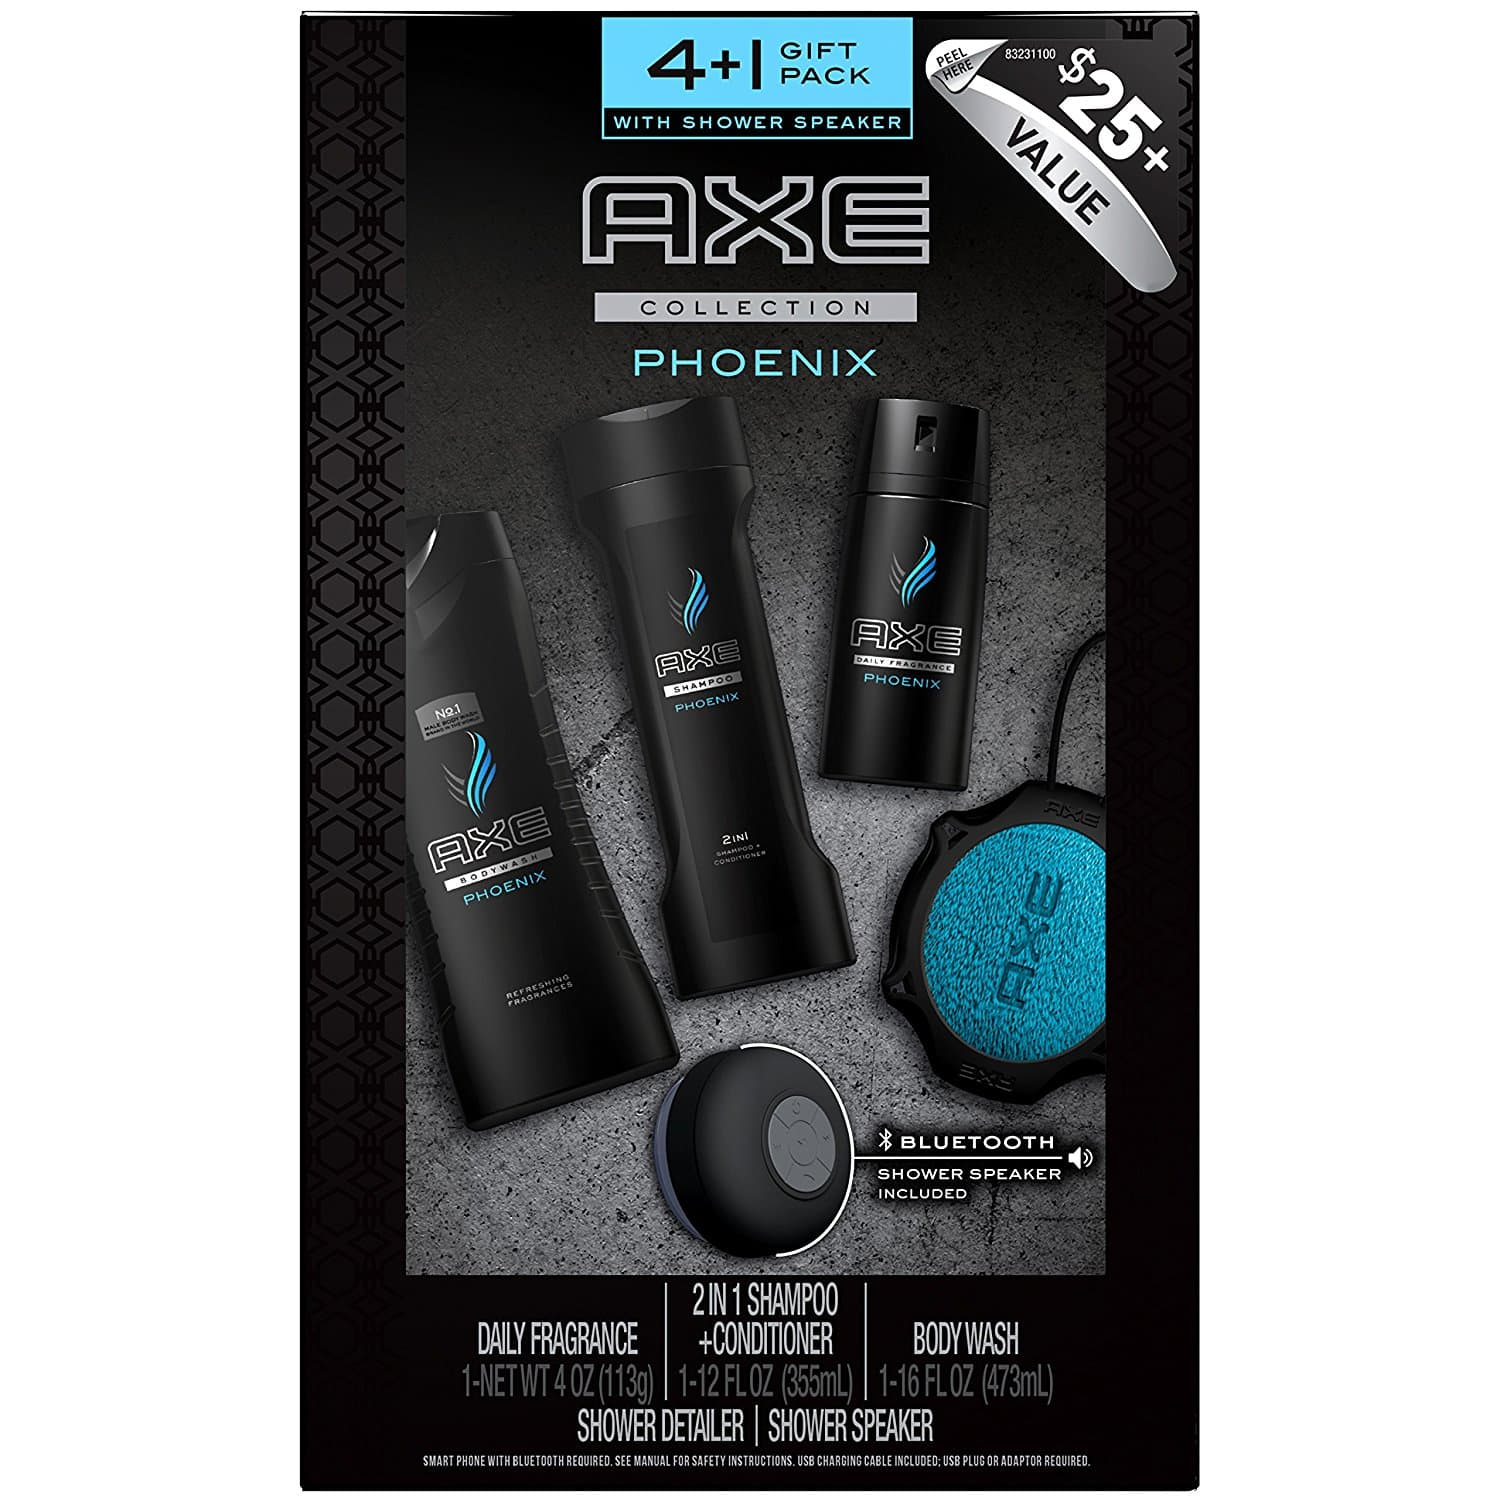 AXE Gift Pack (5 in 1) with Shower Speaker, Phoenix (Prime Now = Extreme YMMV) $5.50